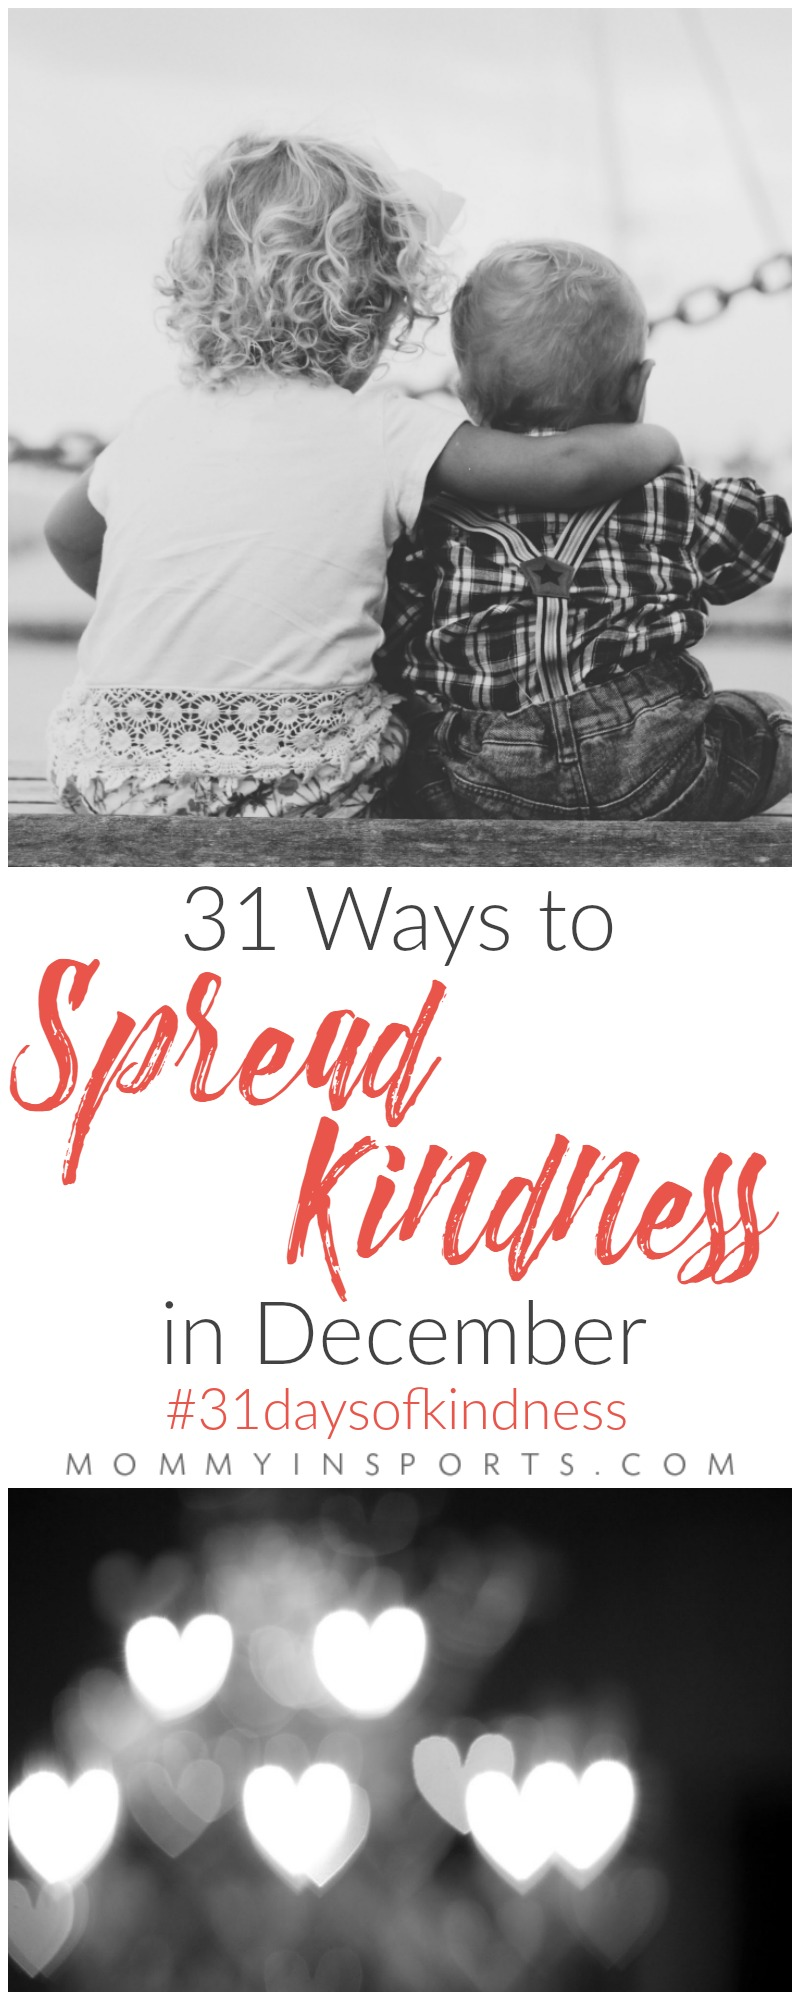 Are you feeling blue this holiday season? Let's raise everyone's spirits with these 31 ways to spread kindness in December. One for each day!